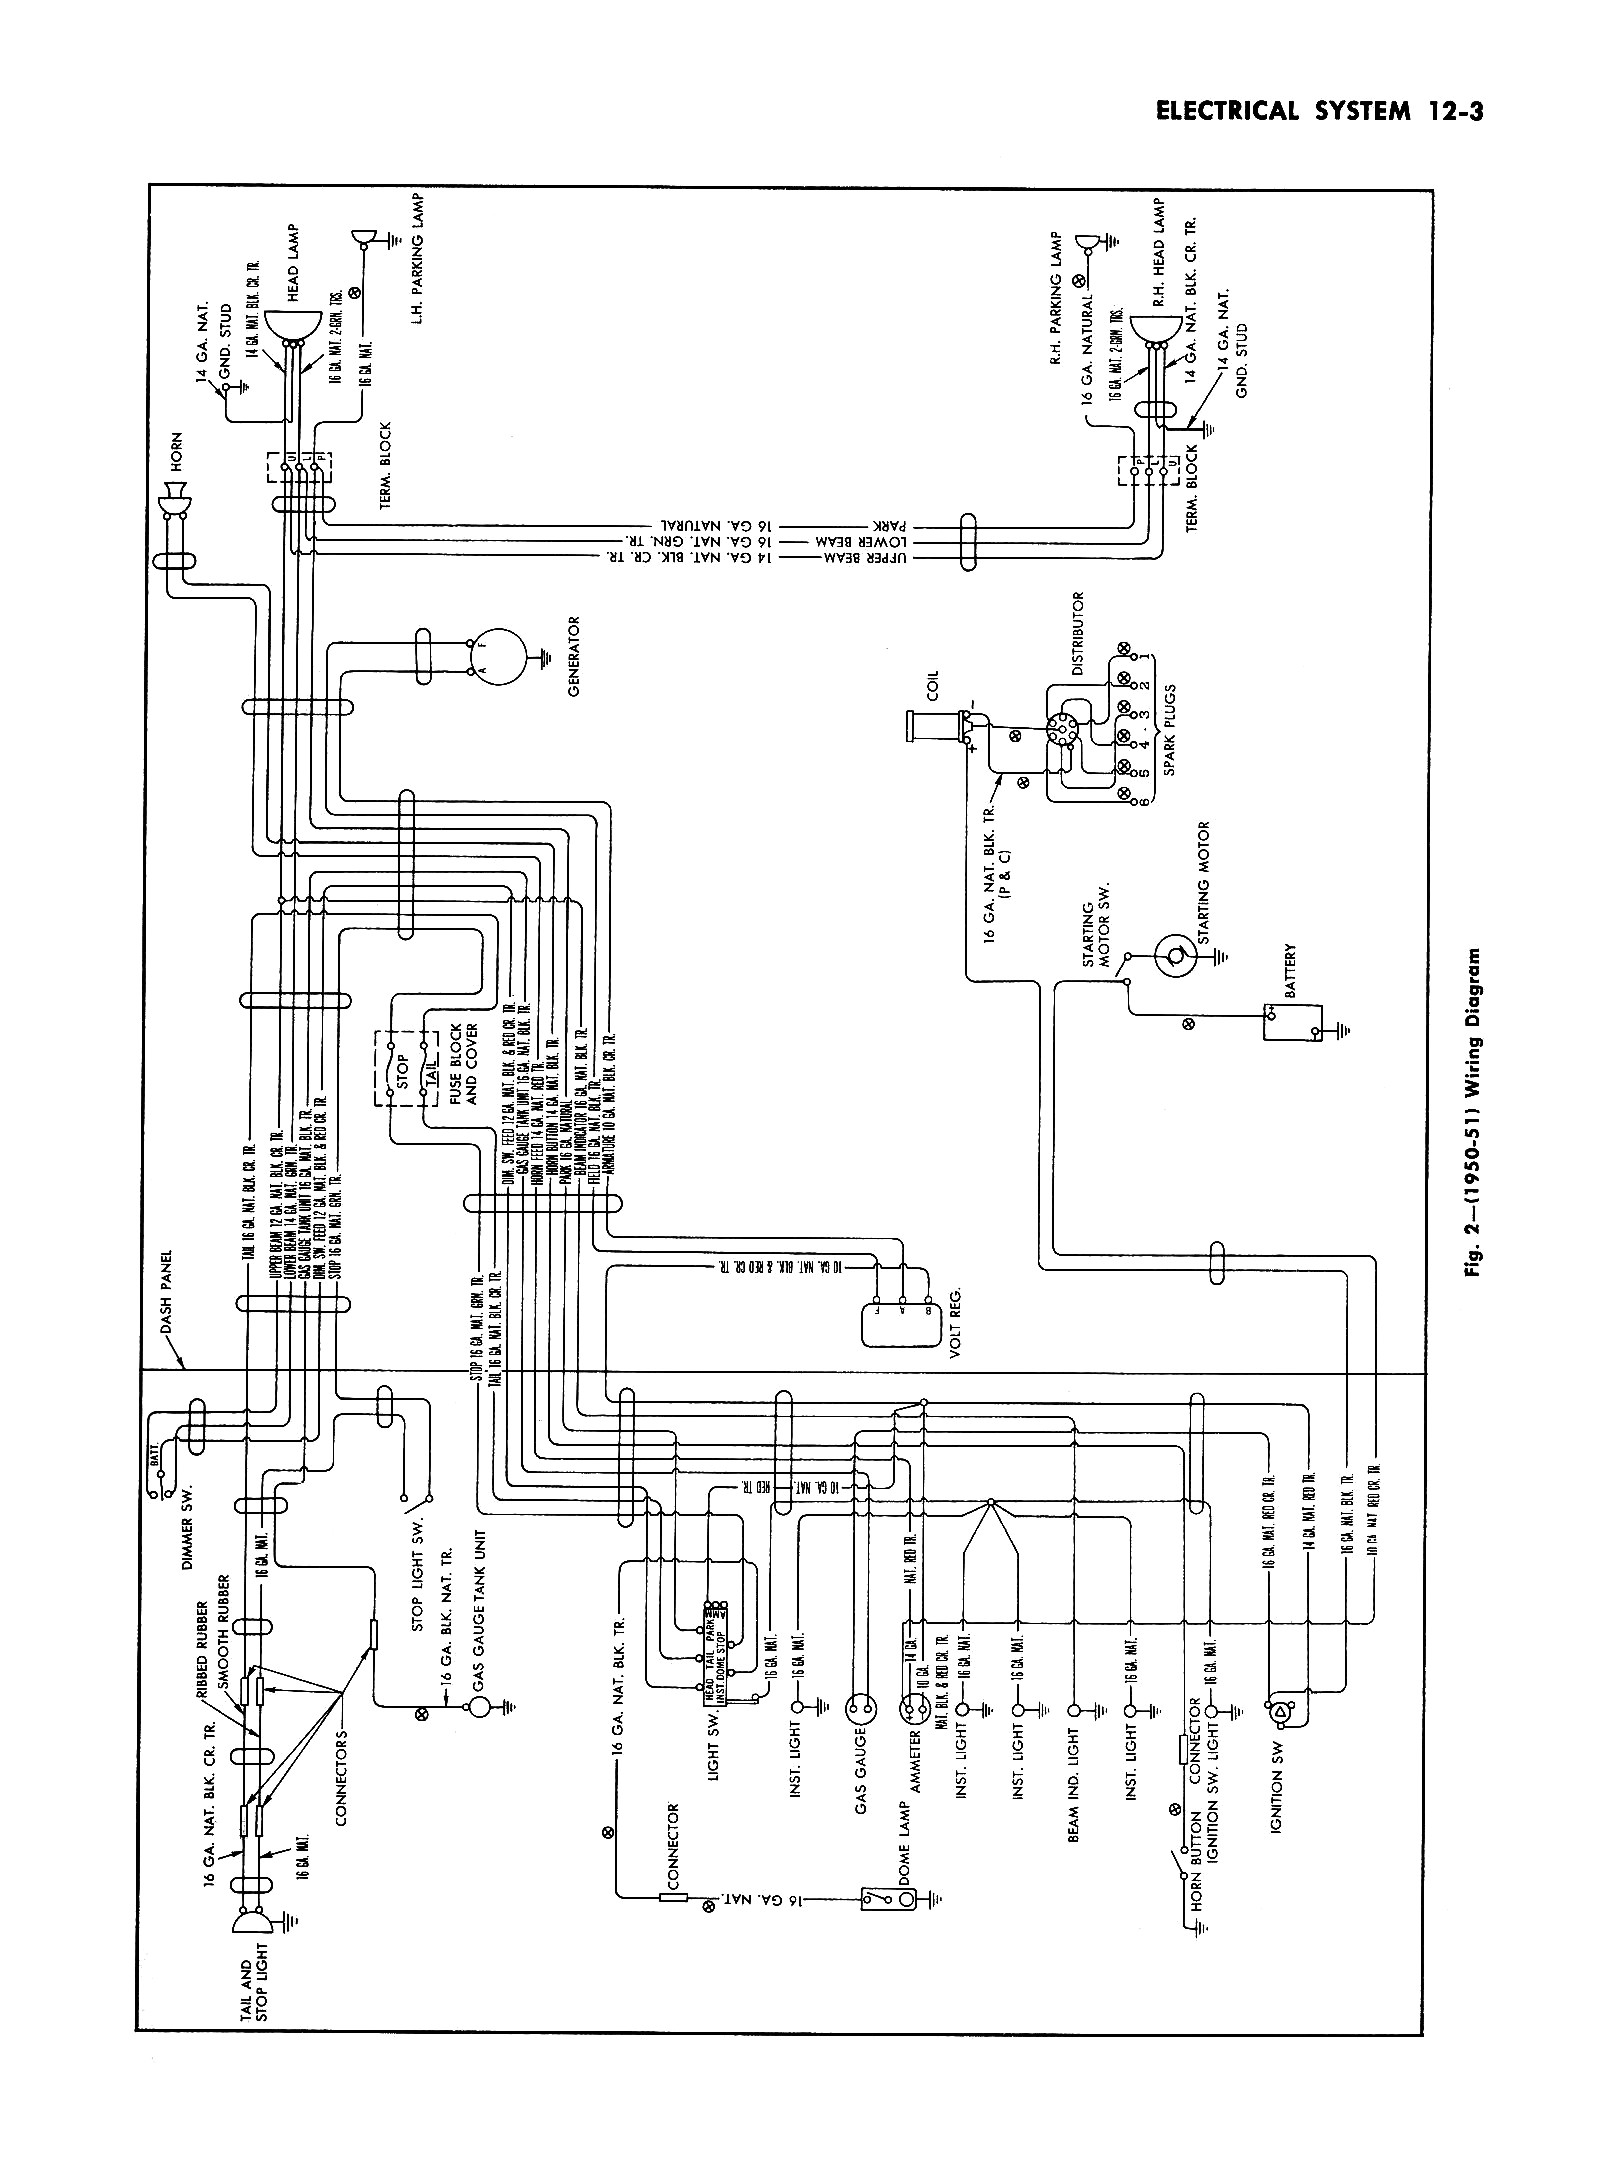 1949 chevy wiring diagrams